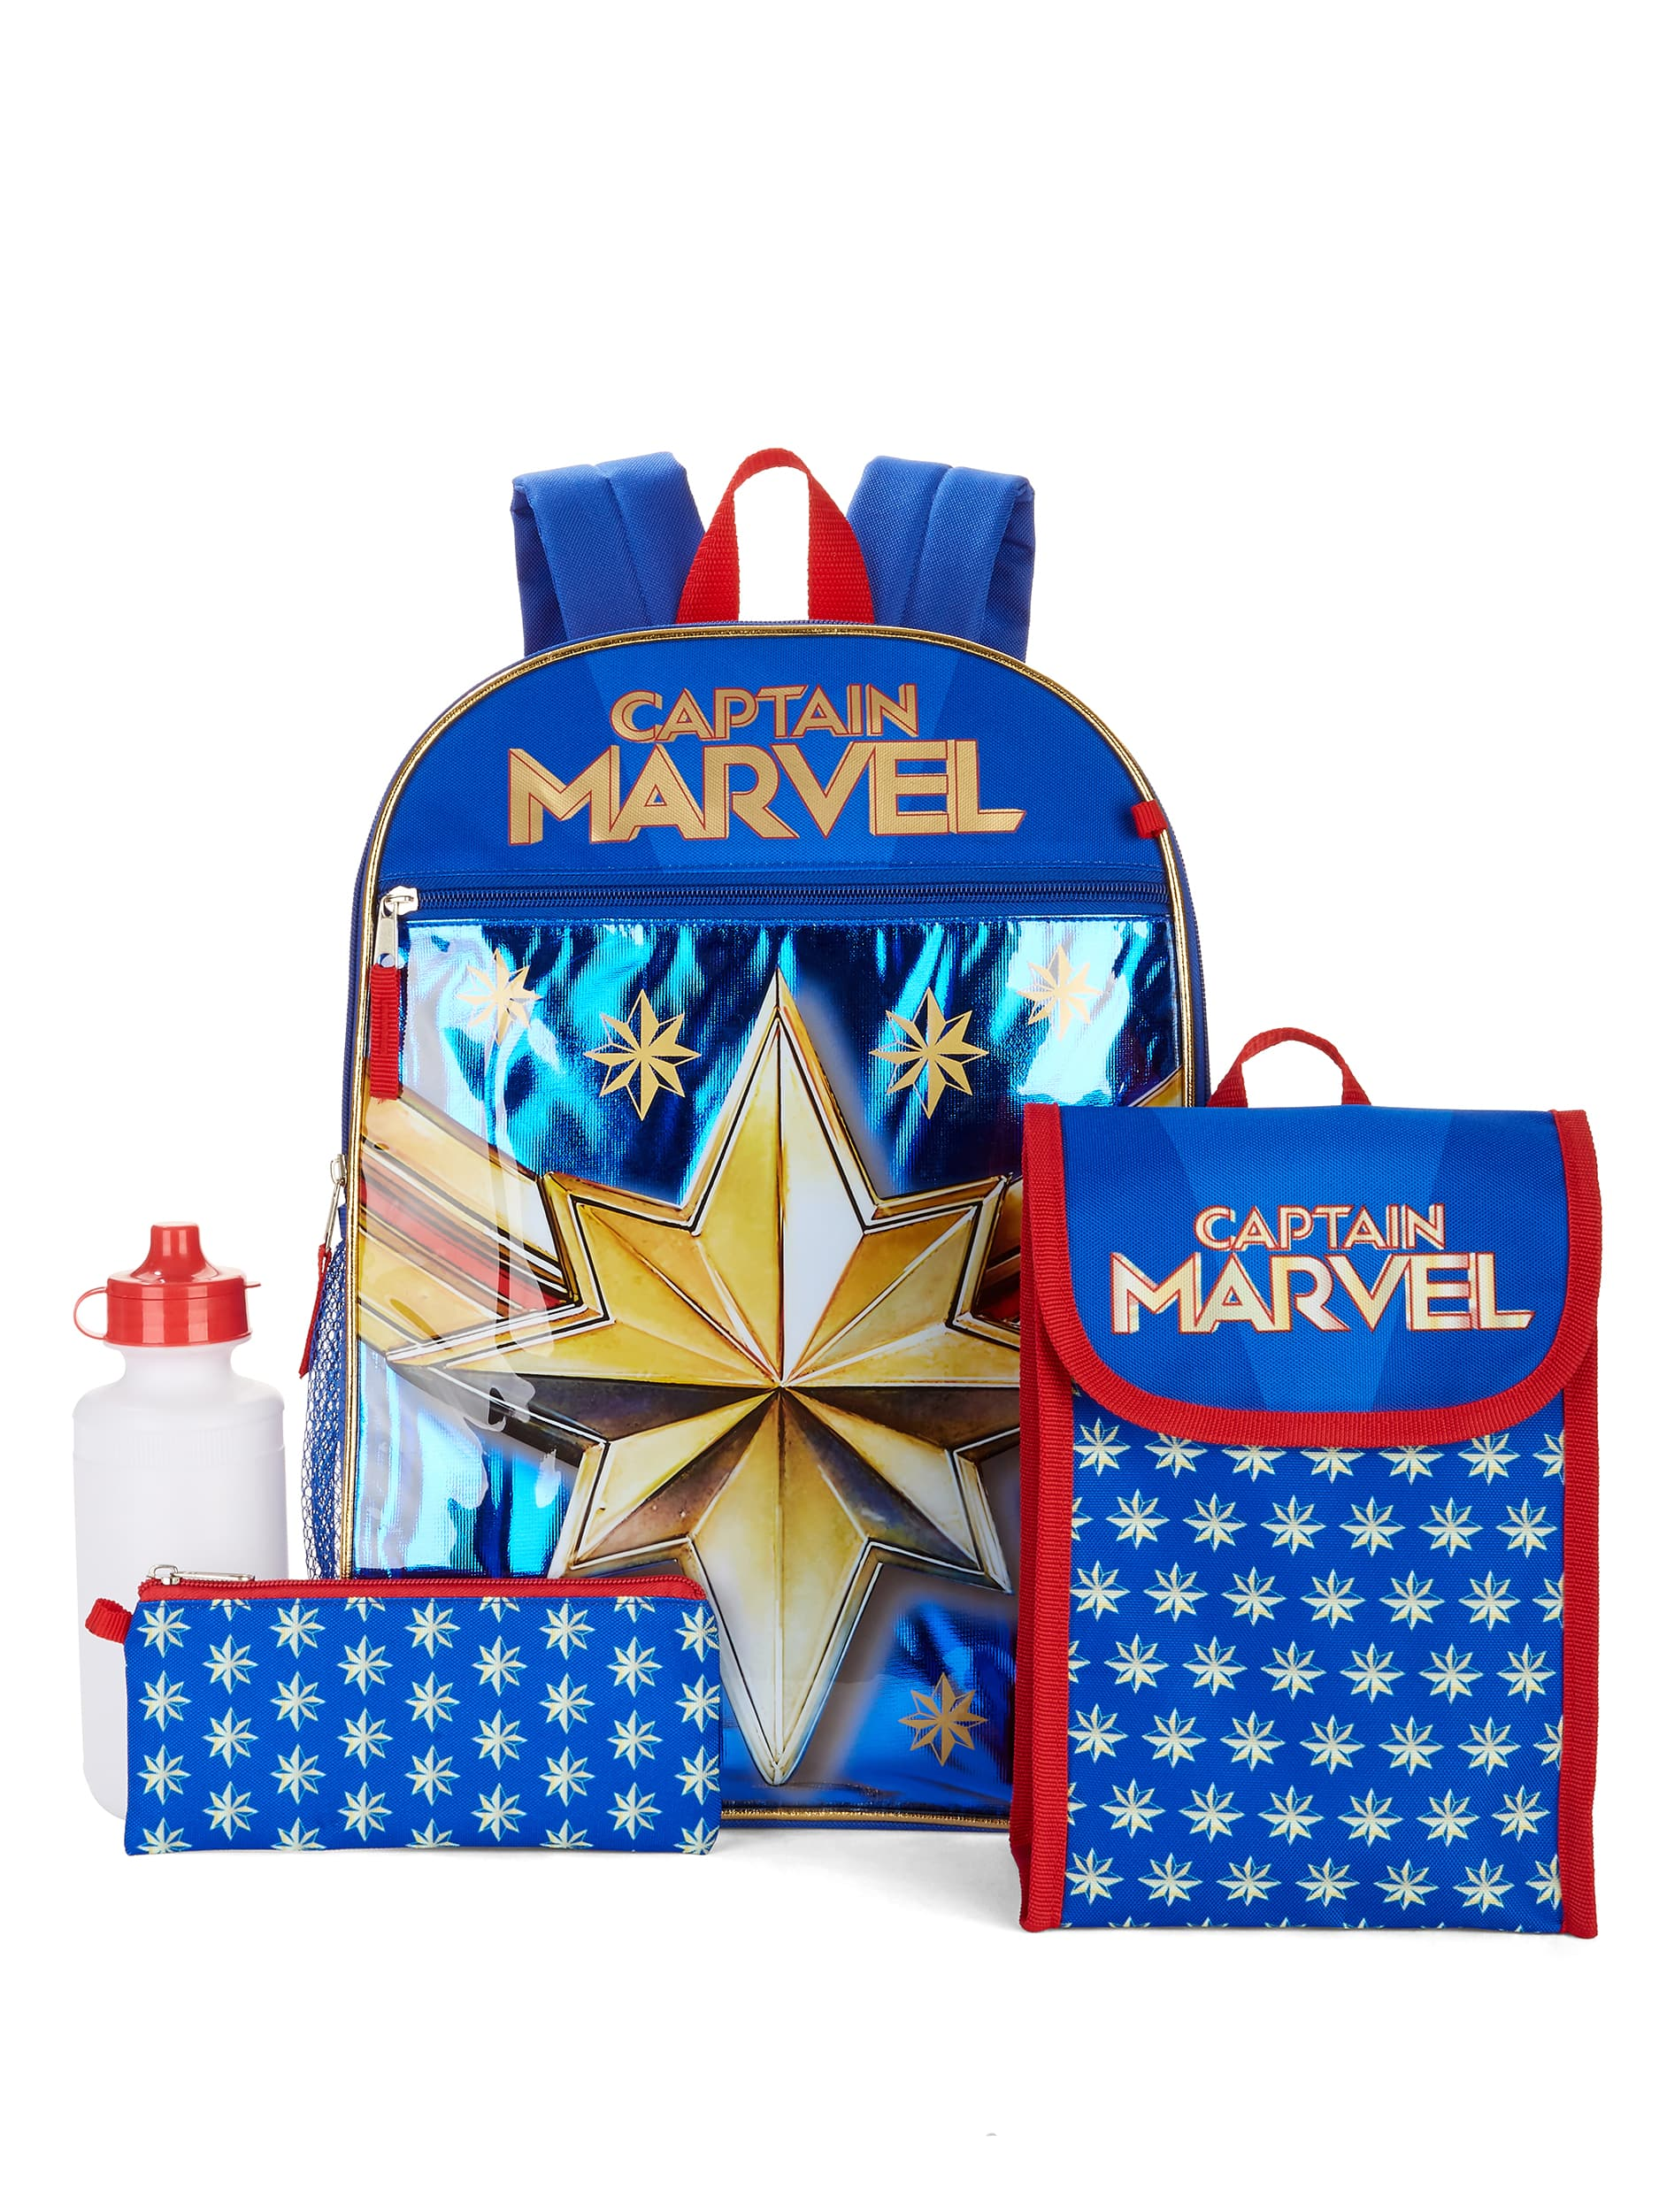 5-Piece Captain Marvel Backpack Set $8.50 & More + Free Store Pickup at Walmart